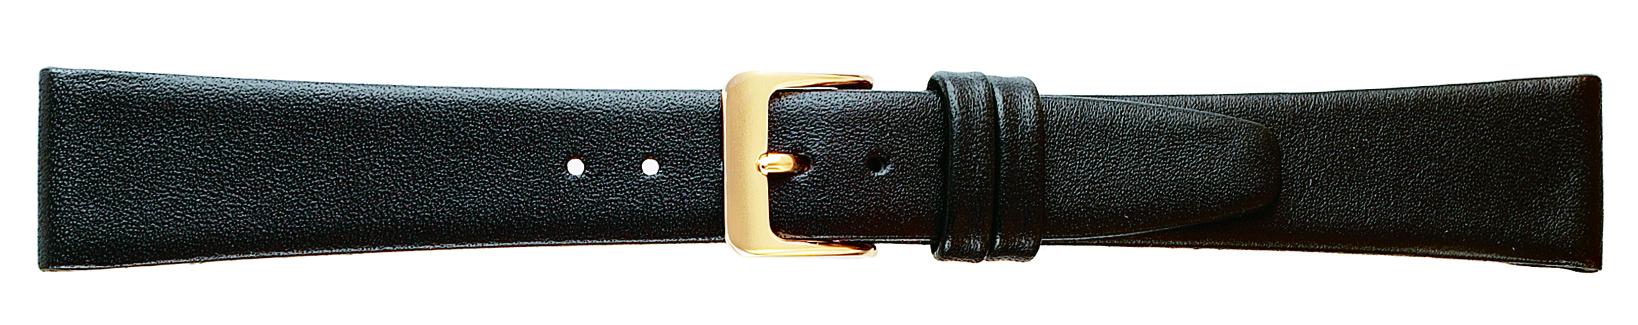 16MM Leather Band Black Smooth Calf-0